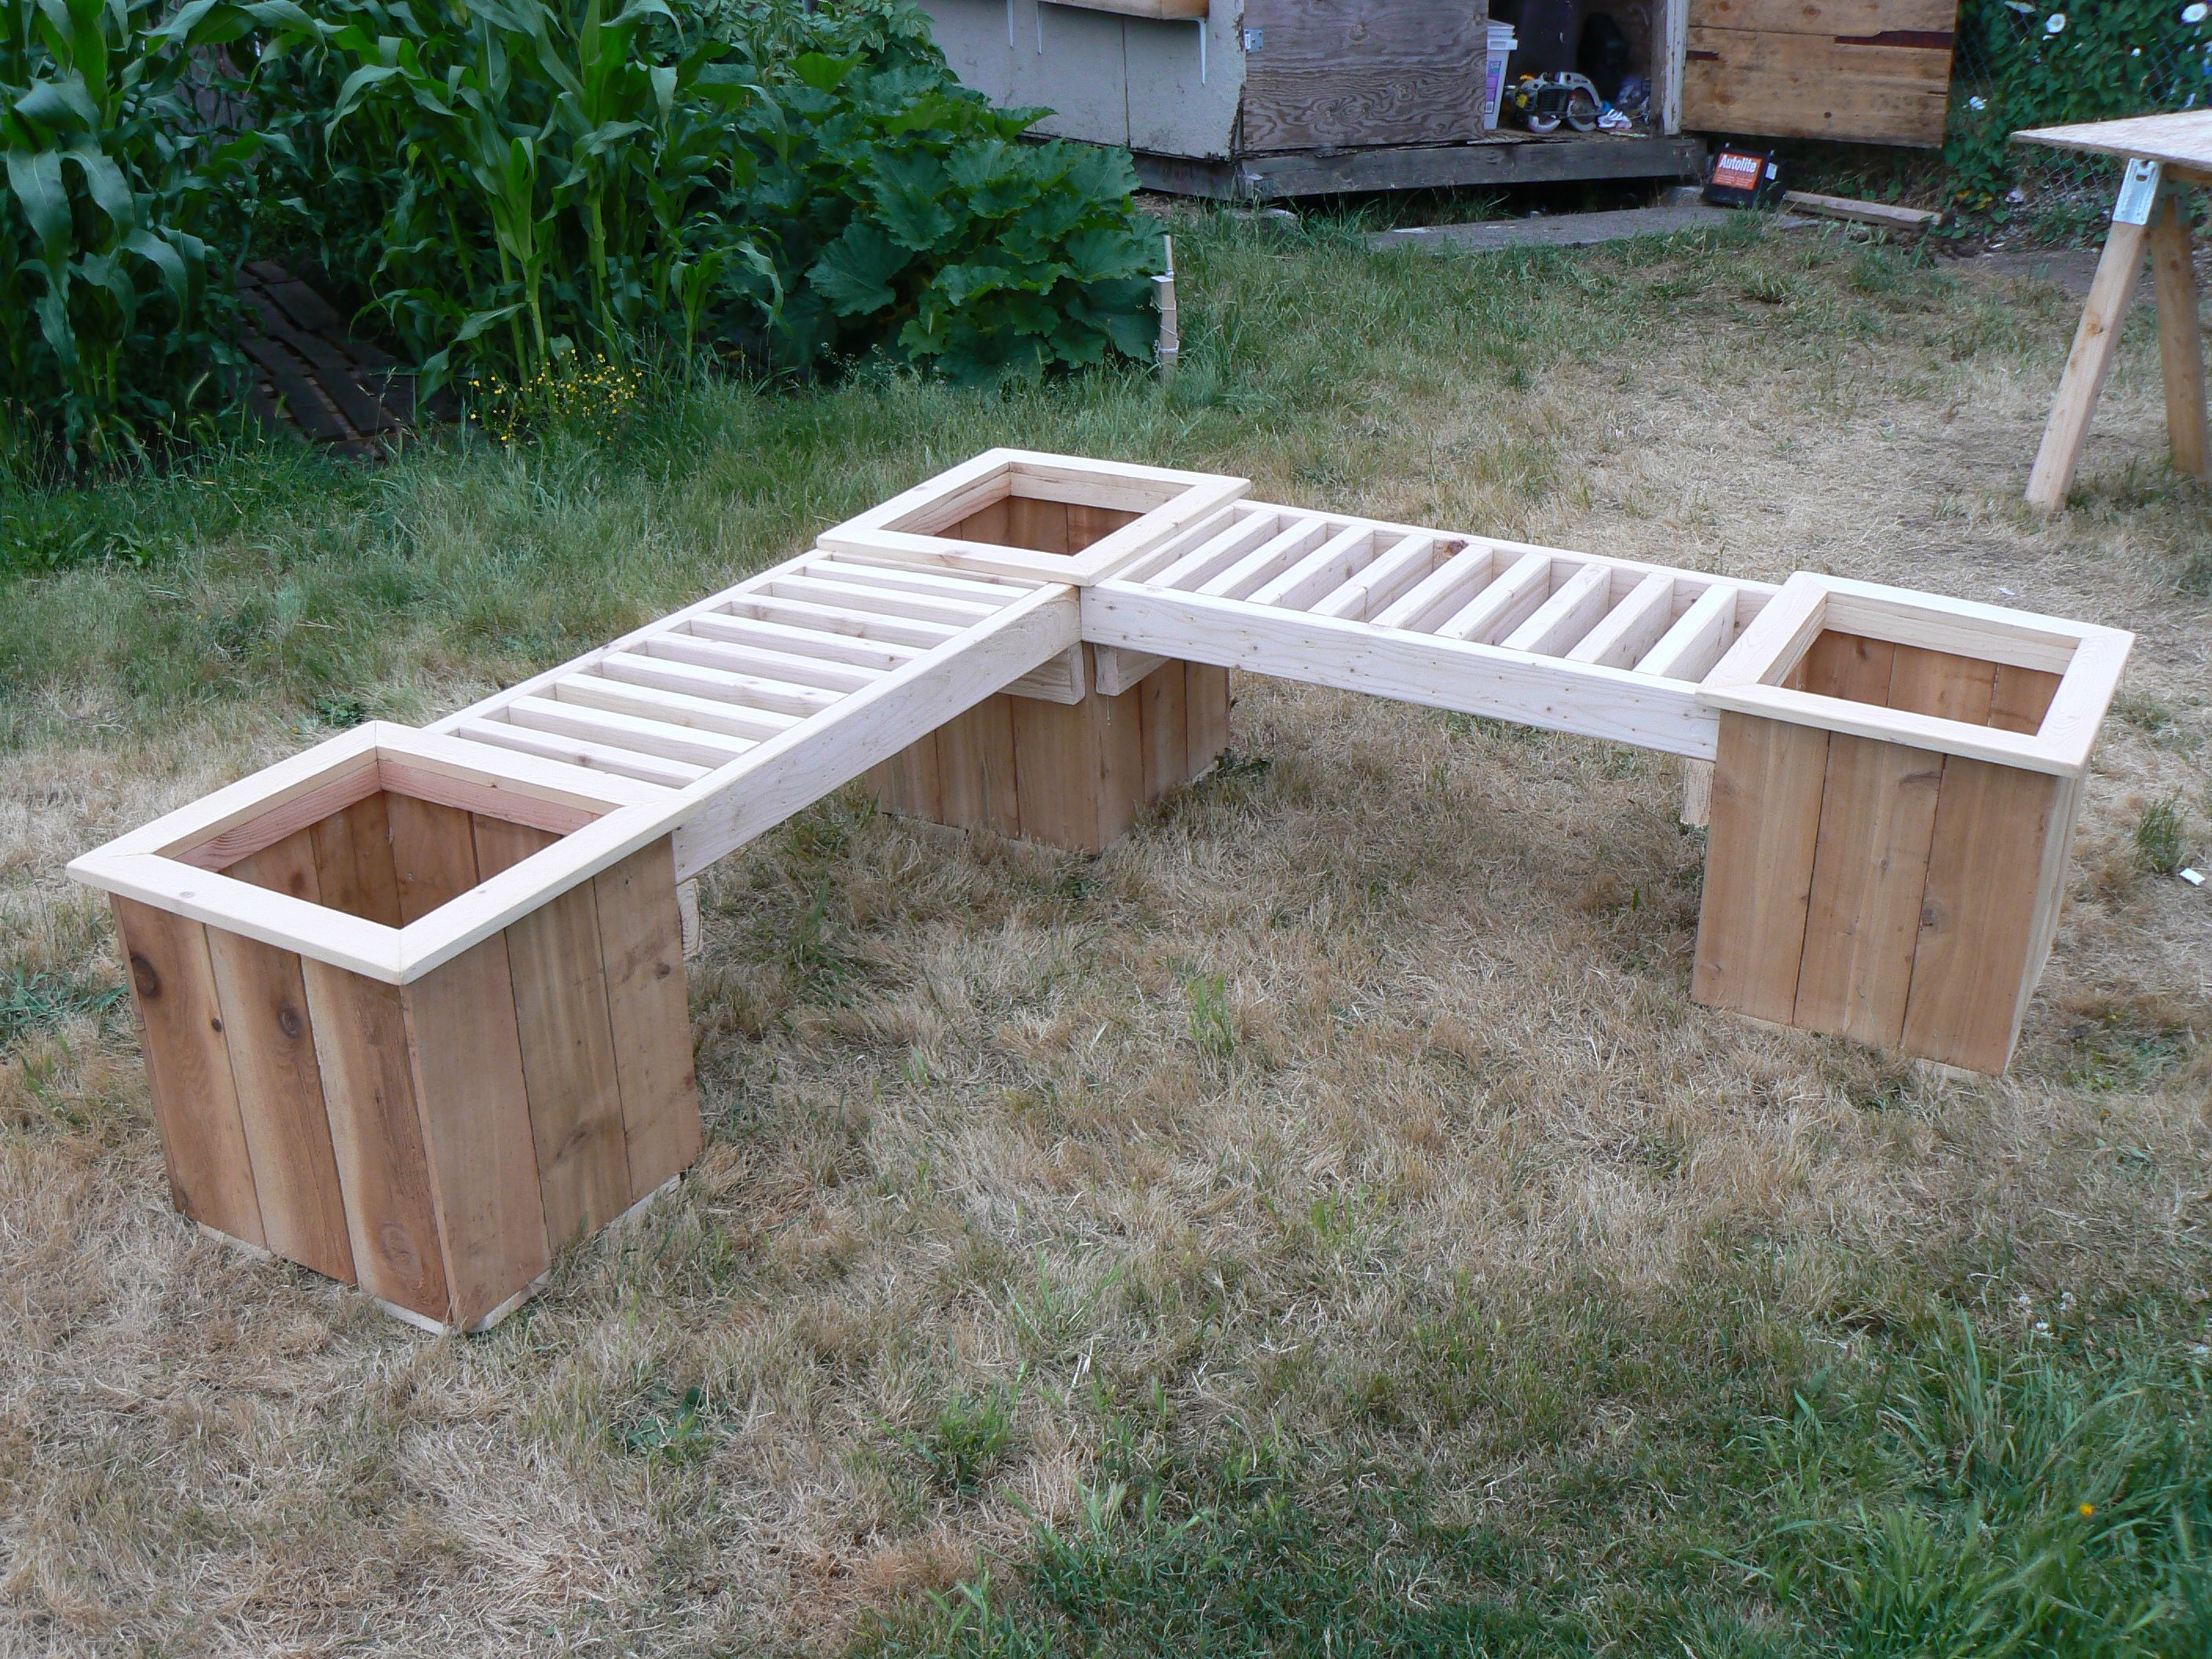 Diy Deck Flower Boxes Quotl Quot Shaped Planter Box Bench With Planters See More At